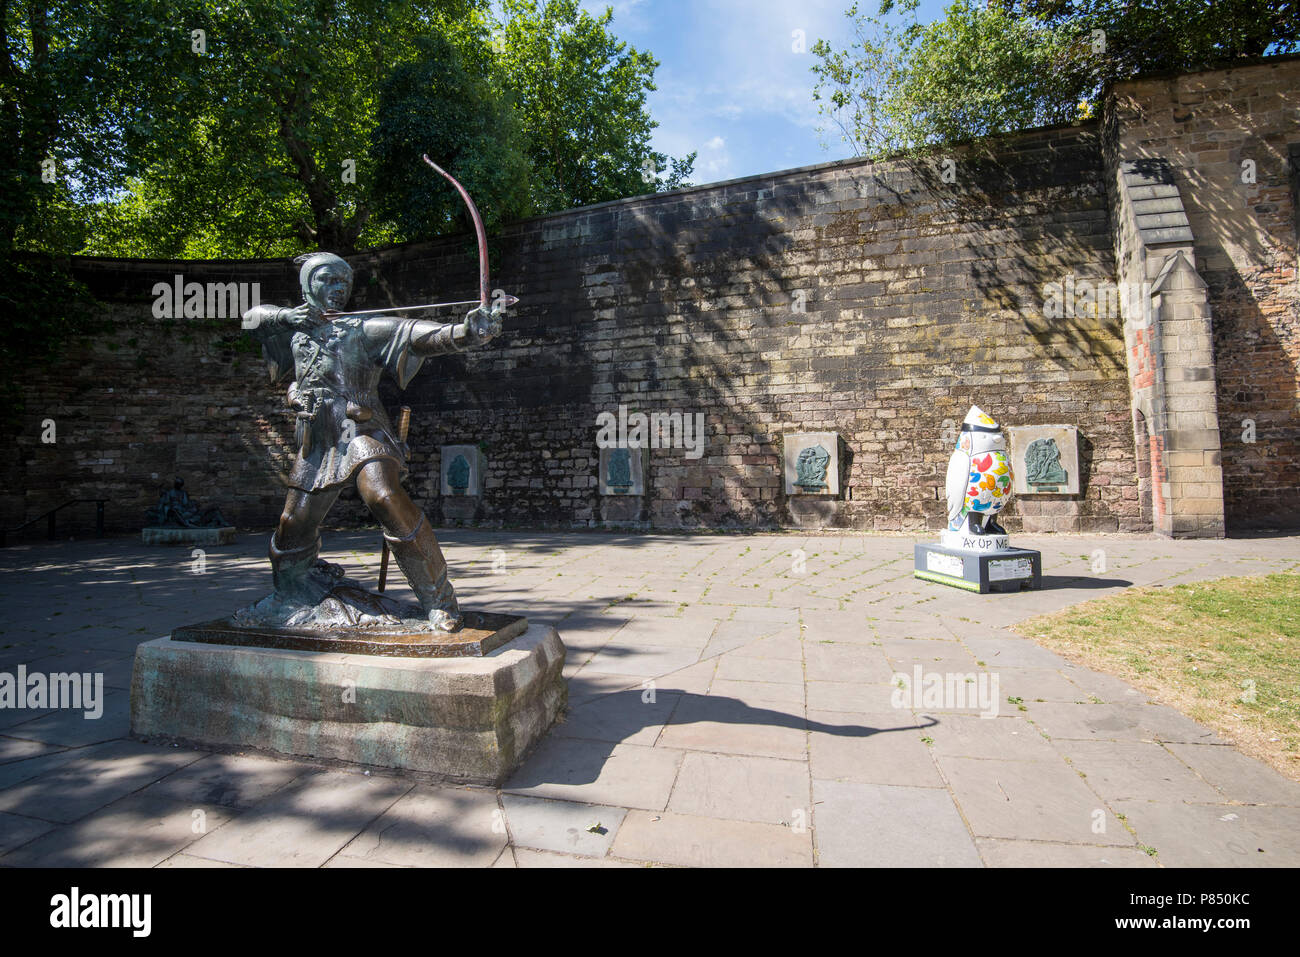 Hoodwinked Wild in Art Sculpture at the Robin Hood Statue at Nottingham Castle, Nottinghamshire England UK - Stock Image